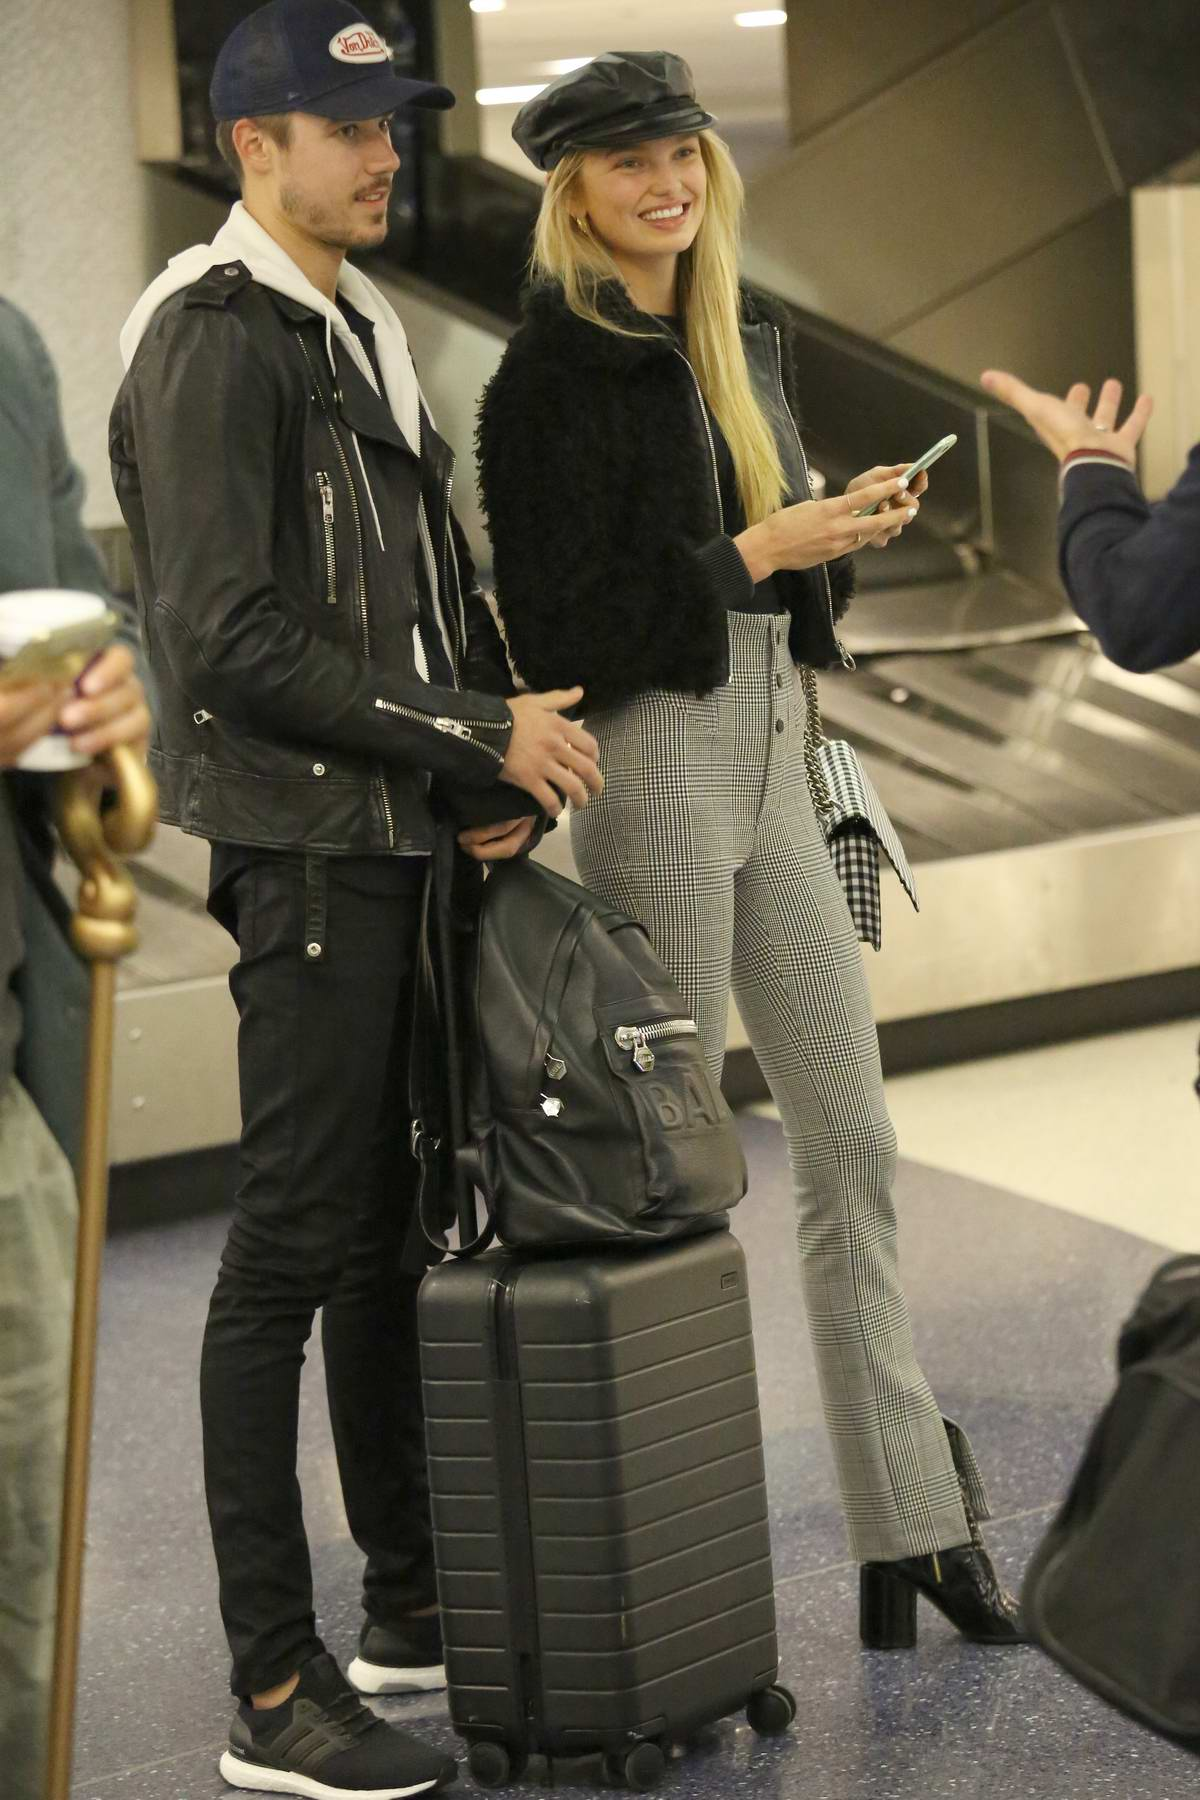 Romee Strijd and her boyfriend arrives at LAX Airport, Los Angeles